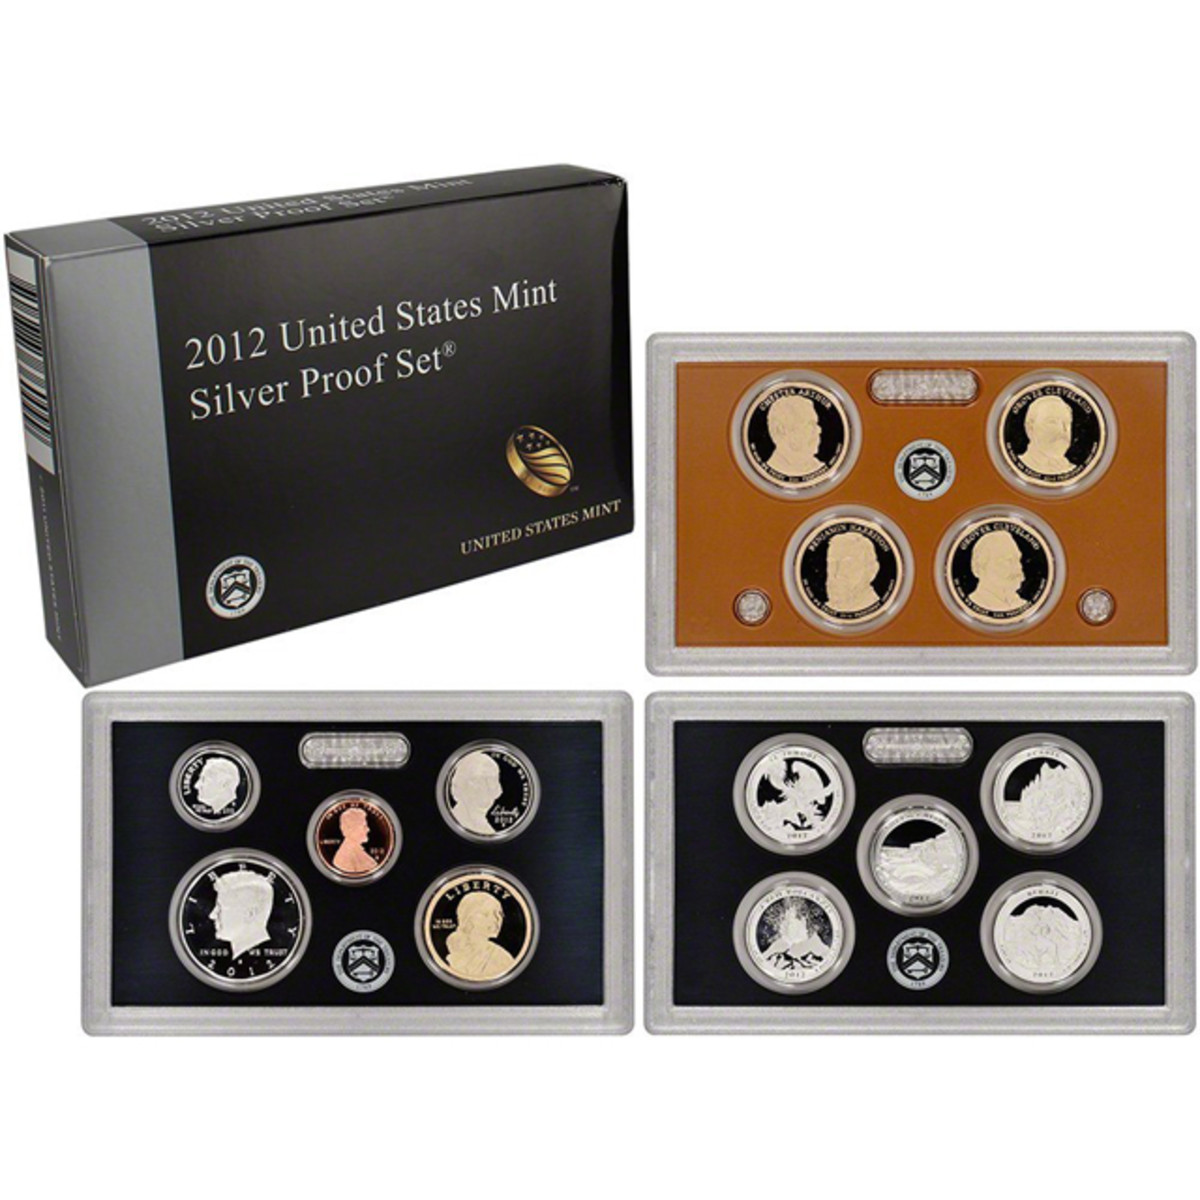 The 2012 silver proof set is one of the few modern proof sets with a premium - a market value of around $200 on a originally $61.95 set.